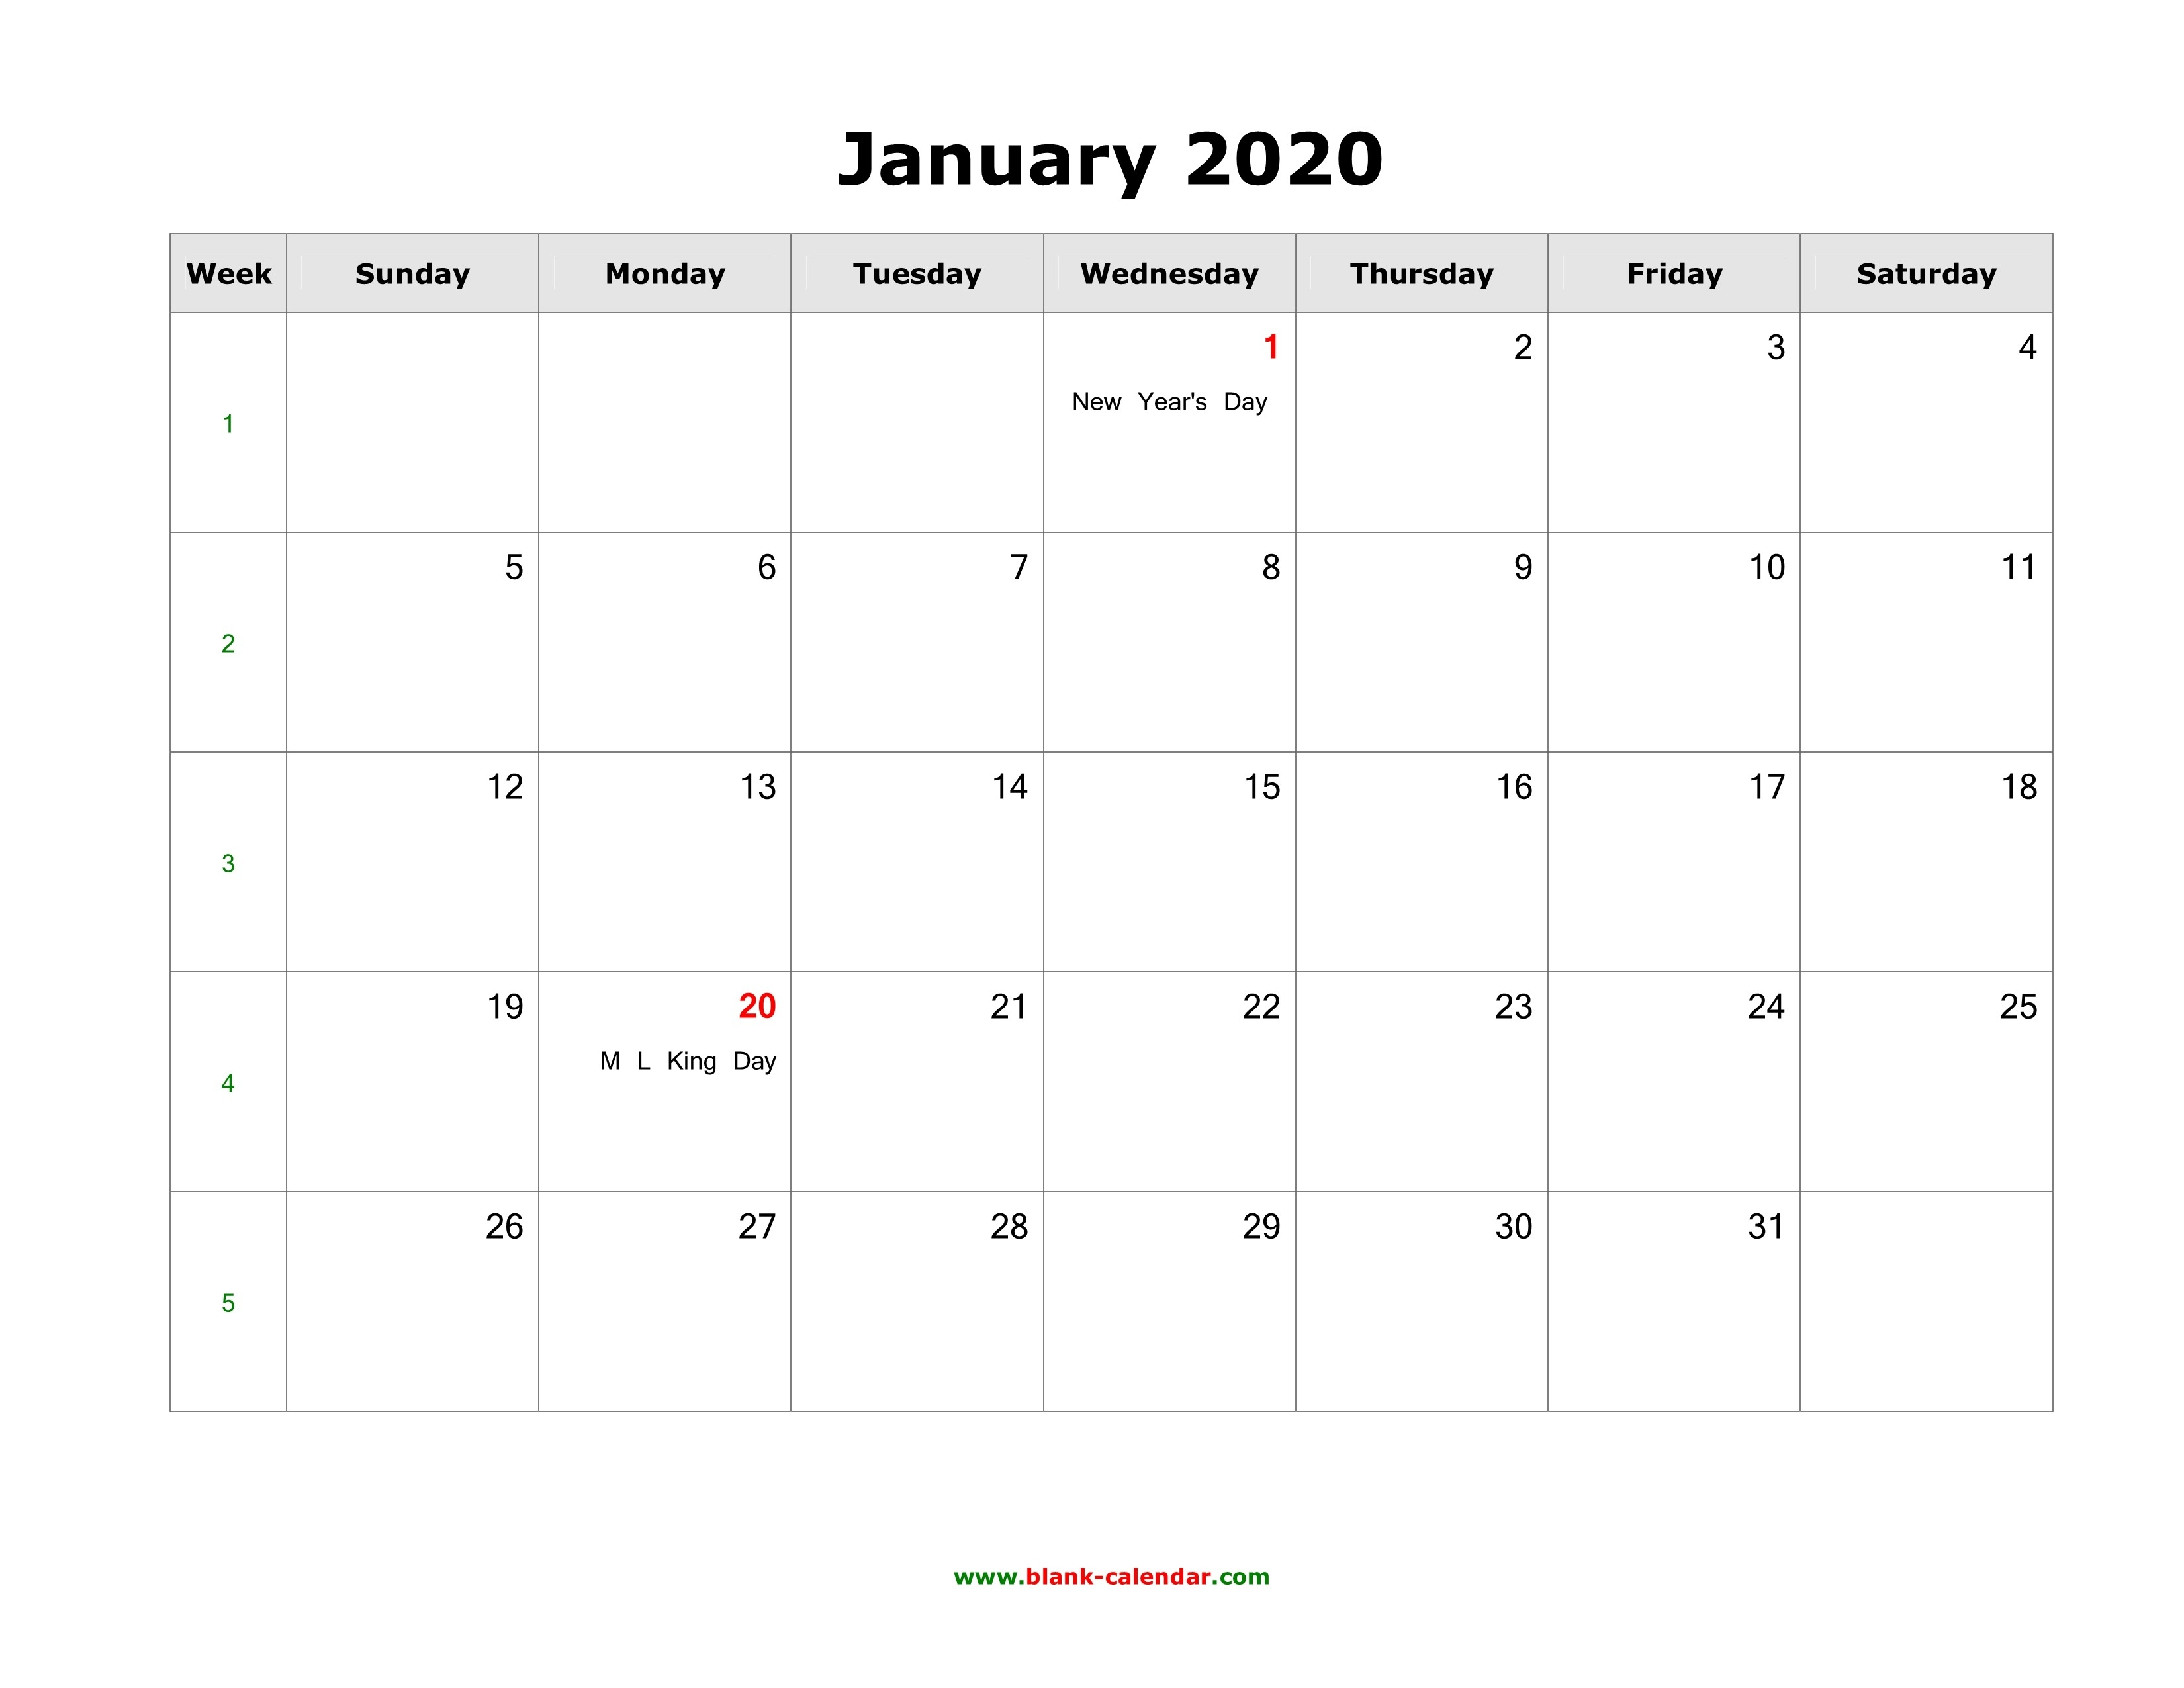 Download January 2020 Blank Calendar With Us Holidays-January 2020 Calendar With Holidays Usa